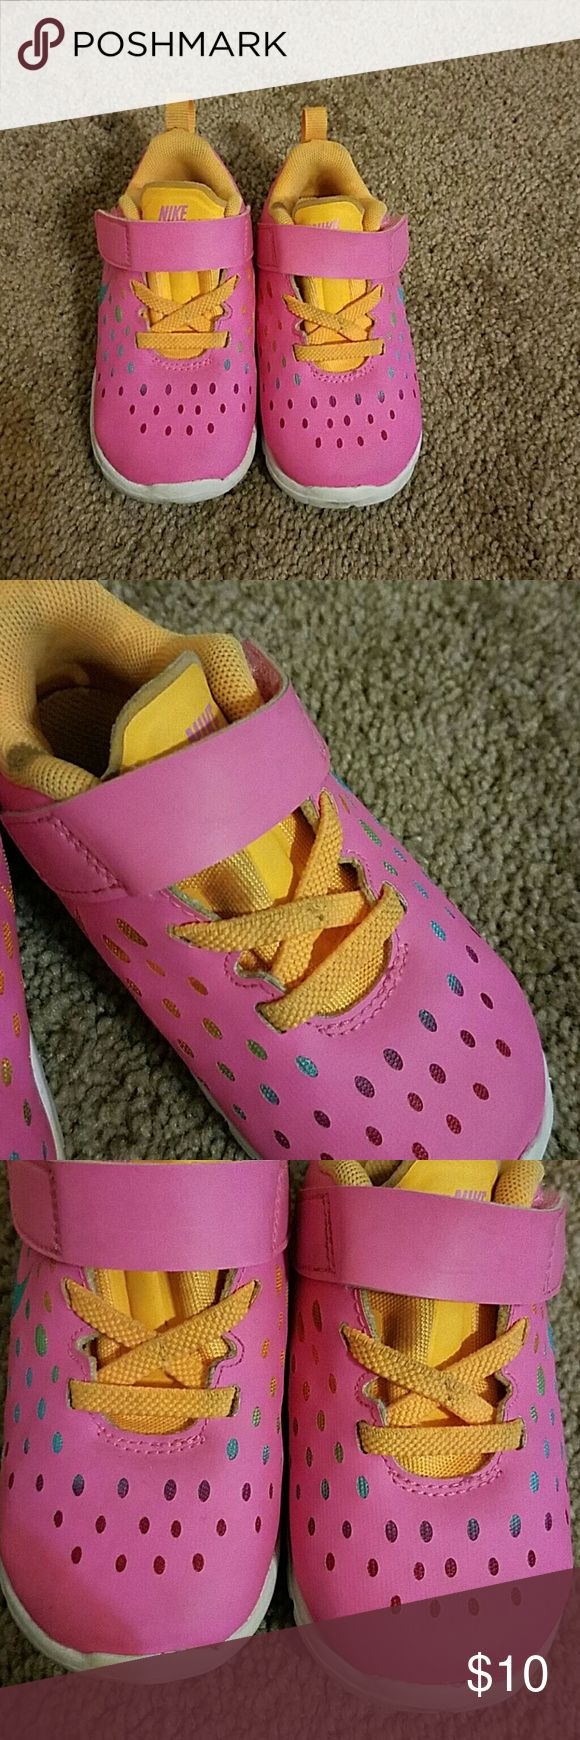 Nike Free Pink Sneakers Toddler Size 7 Adorable Nike Free Pink Sneakers with Colors of Orange, Blue, & Turquoise. Great condition as far as wear but as shown in pics they are dirty. Velcro closure for easy on and off Nike Shoes Sneakers